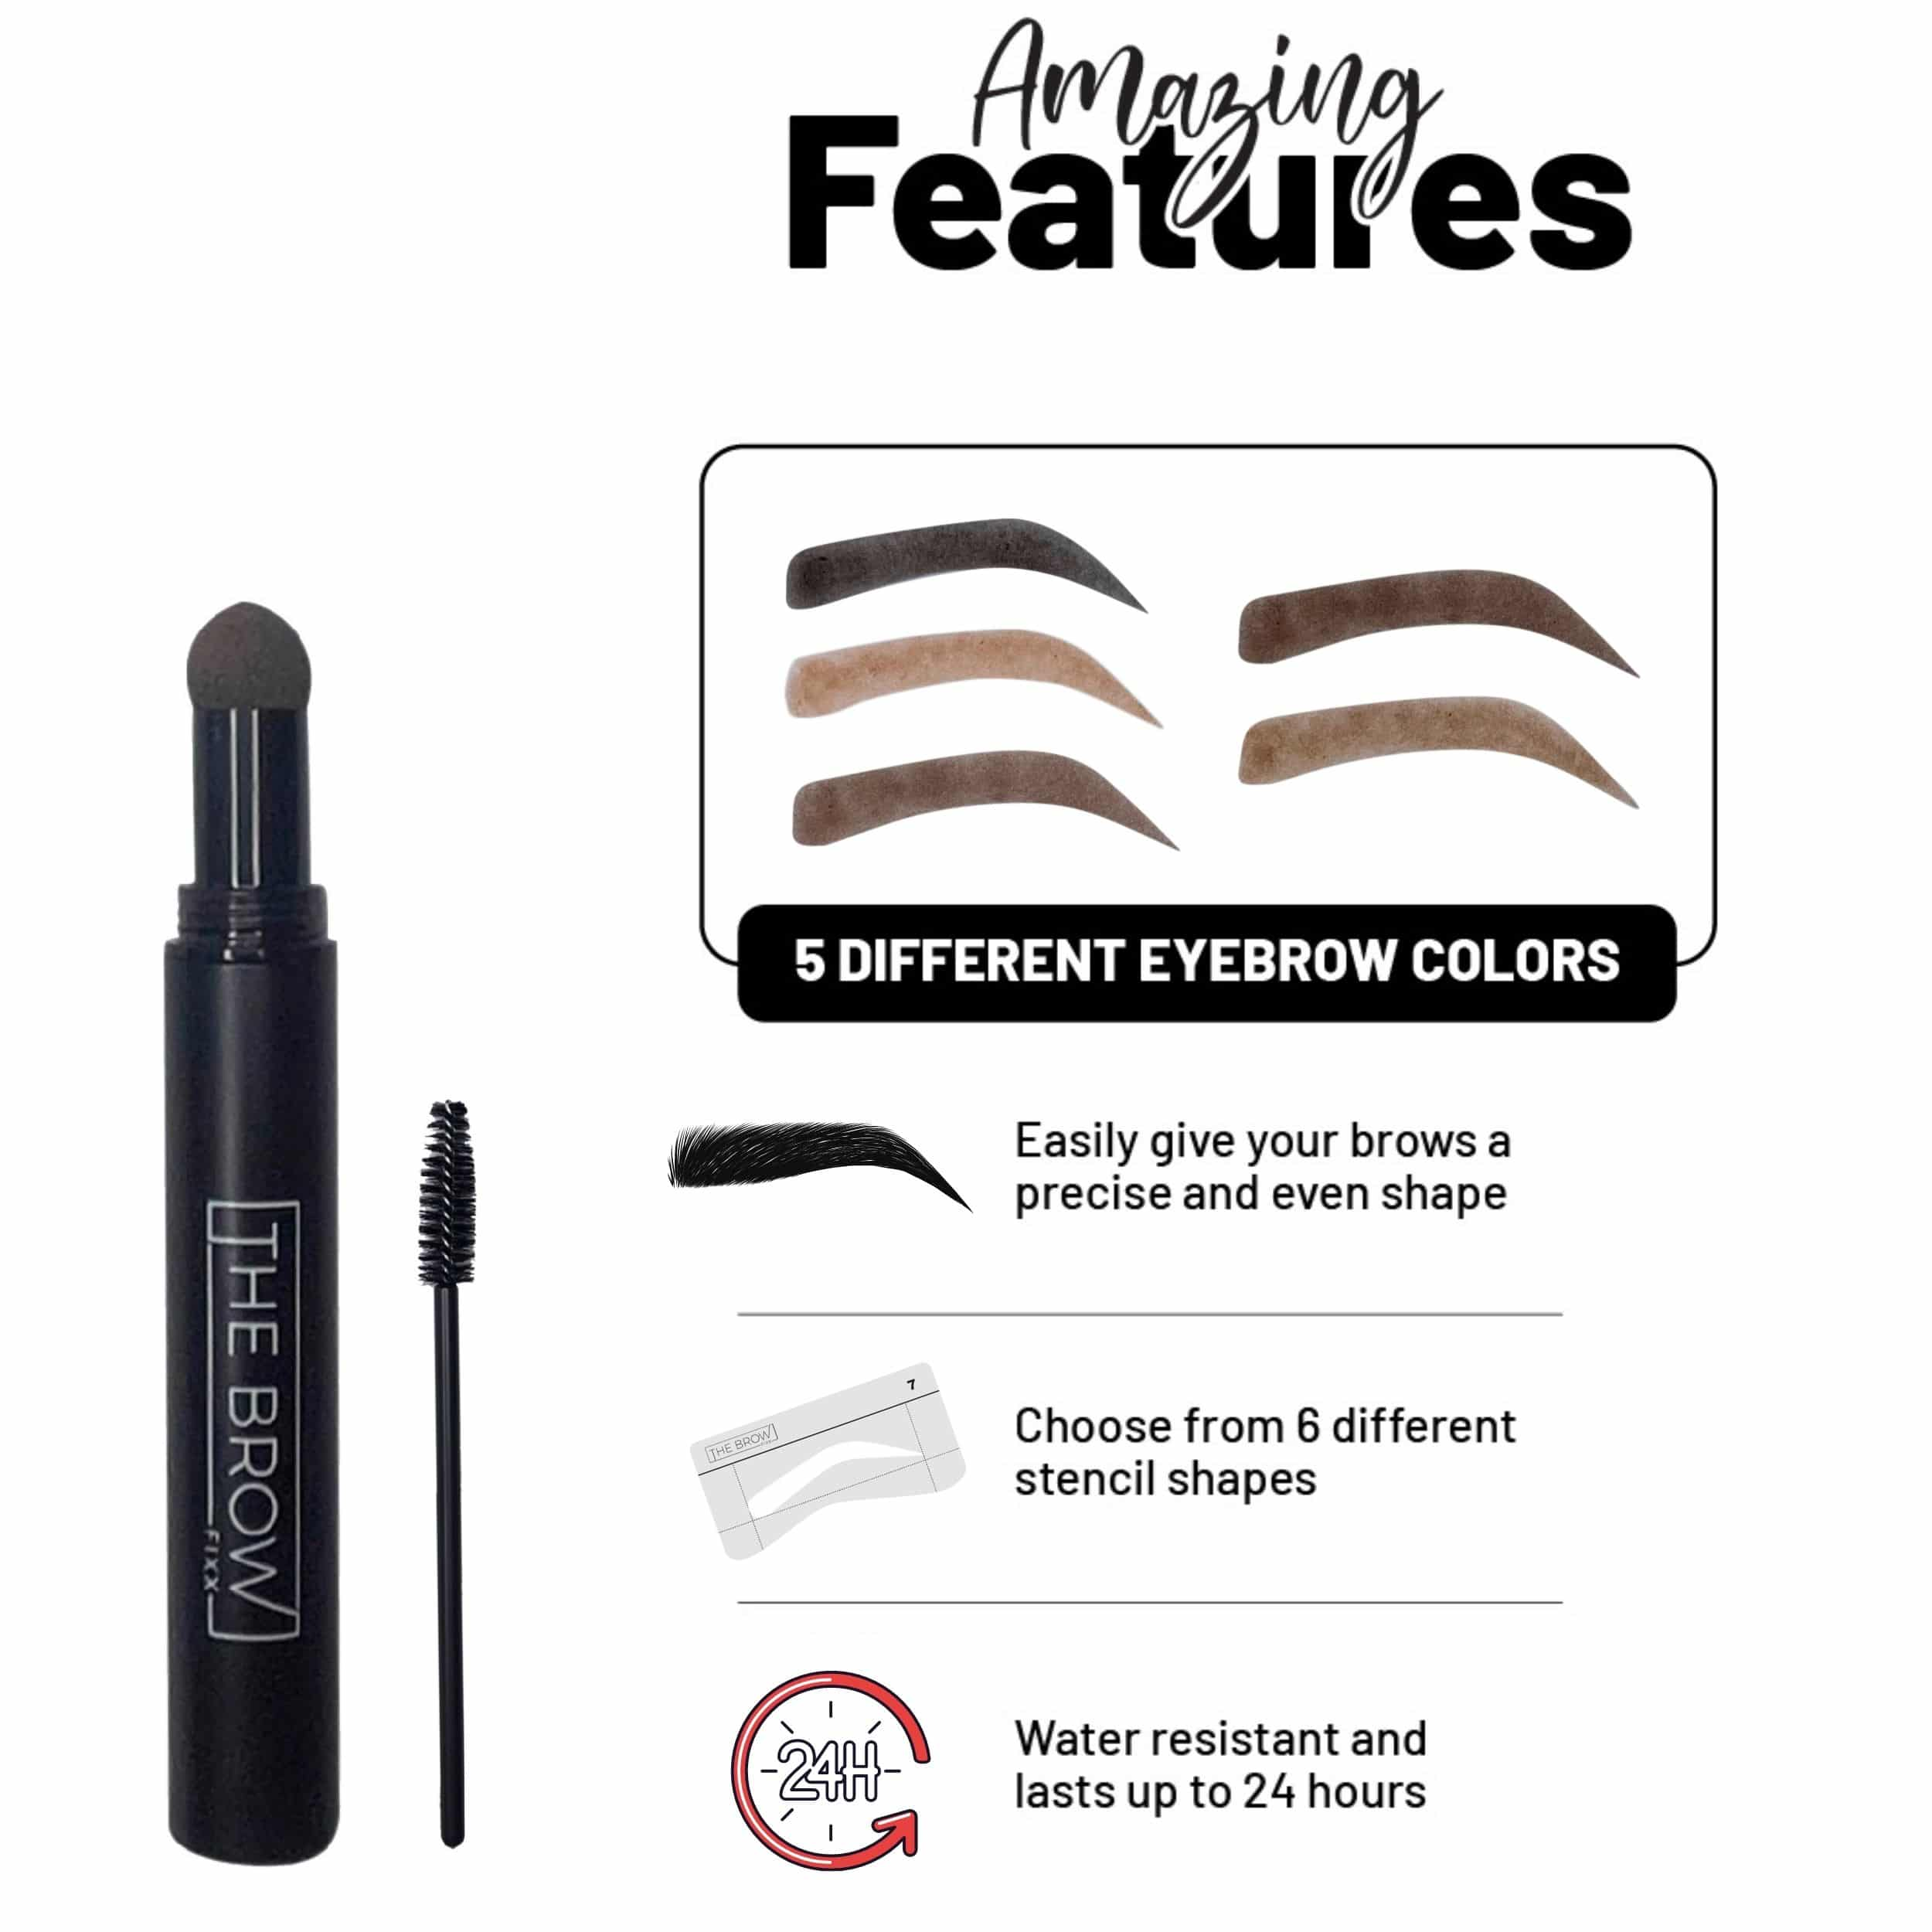 Brow Stamp Shape and Colors